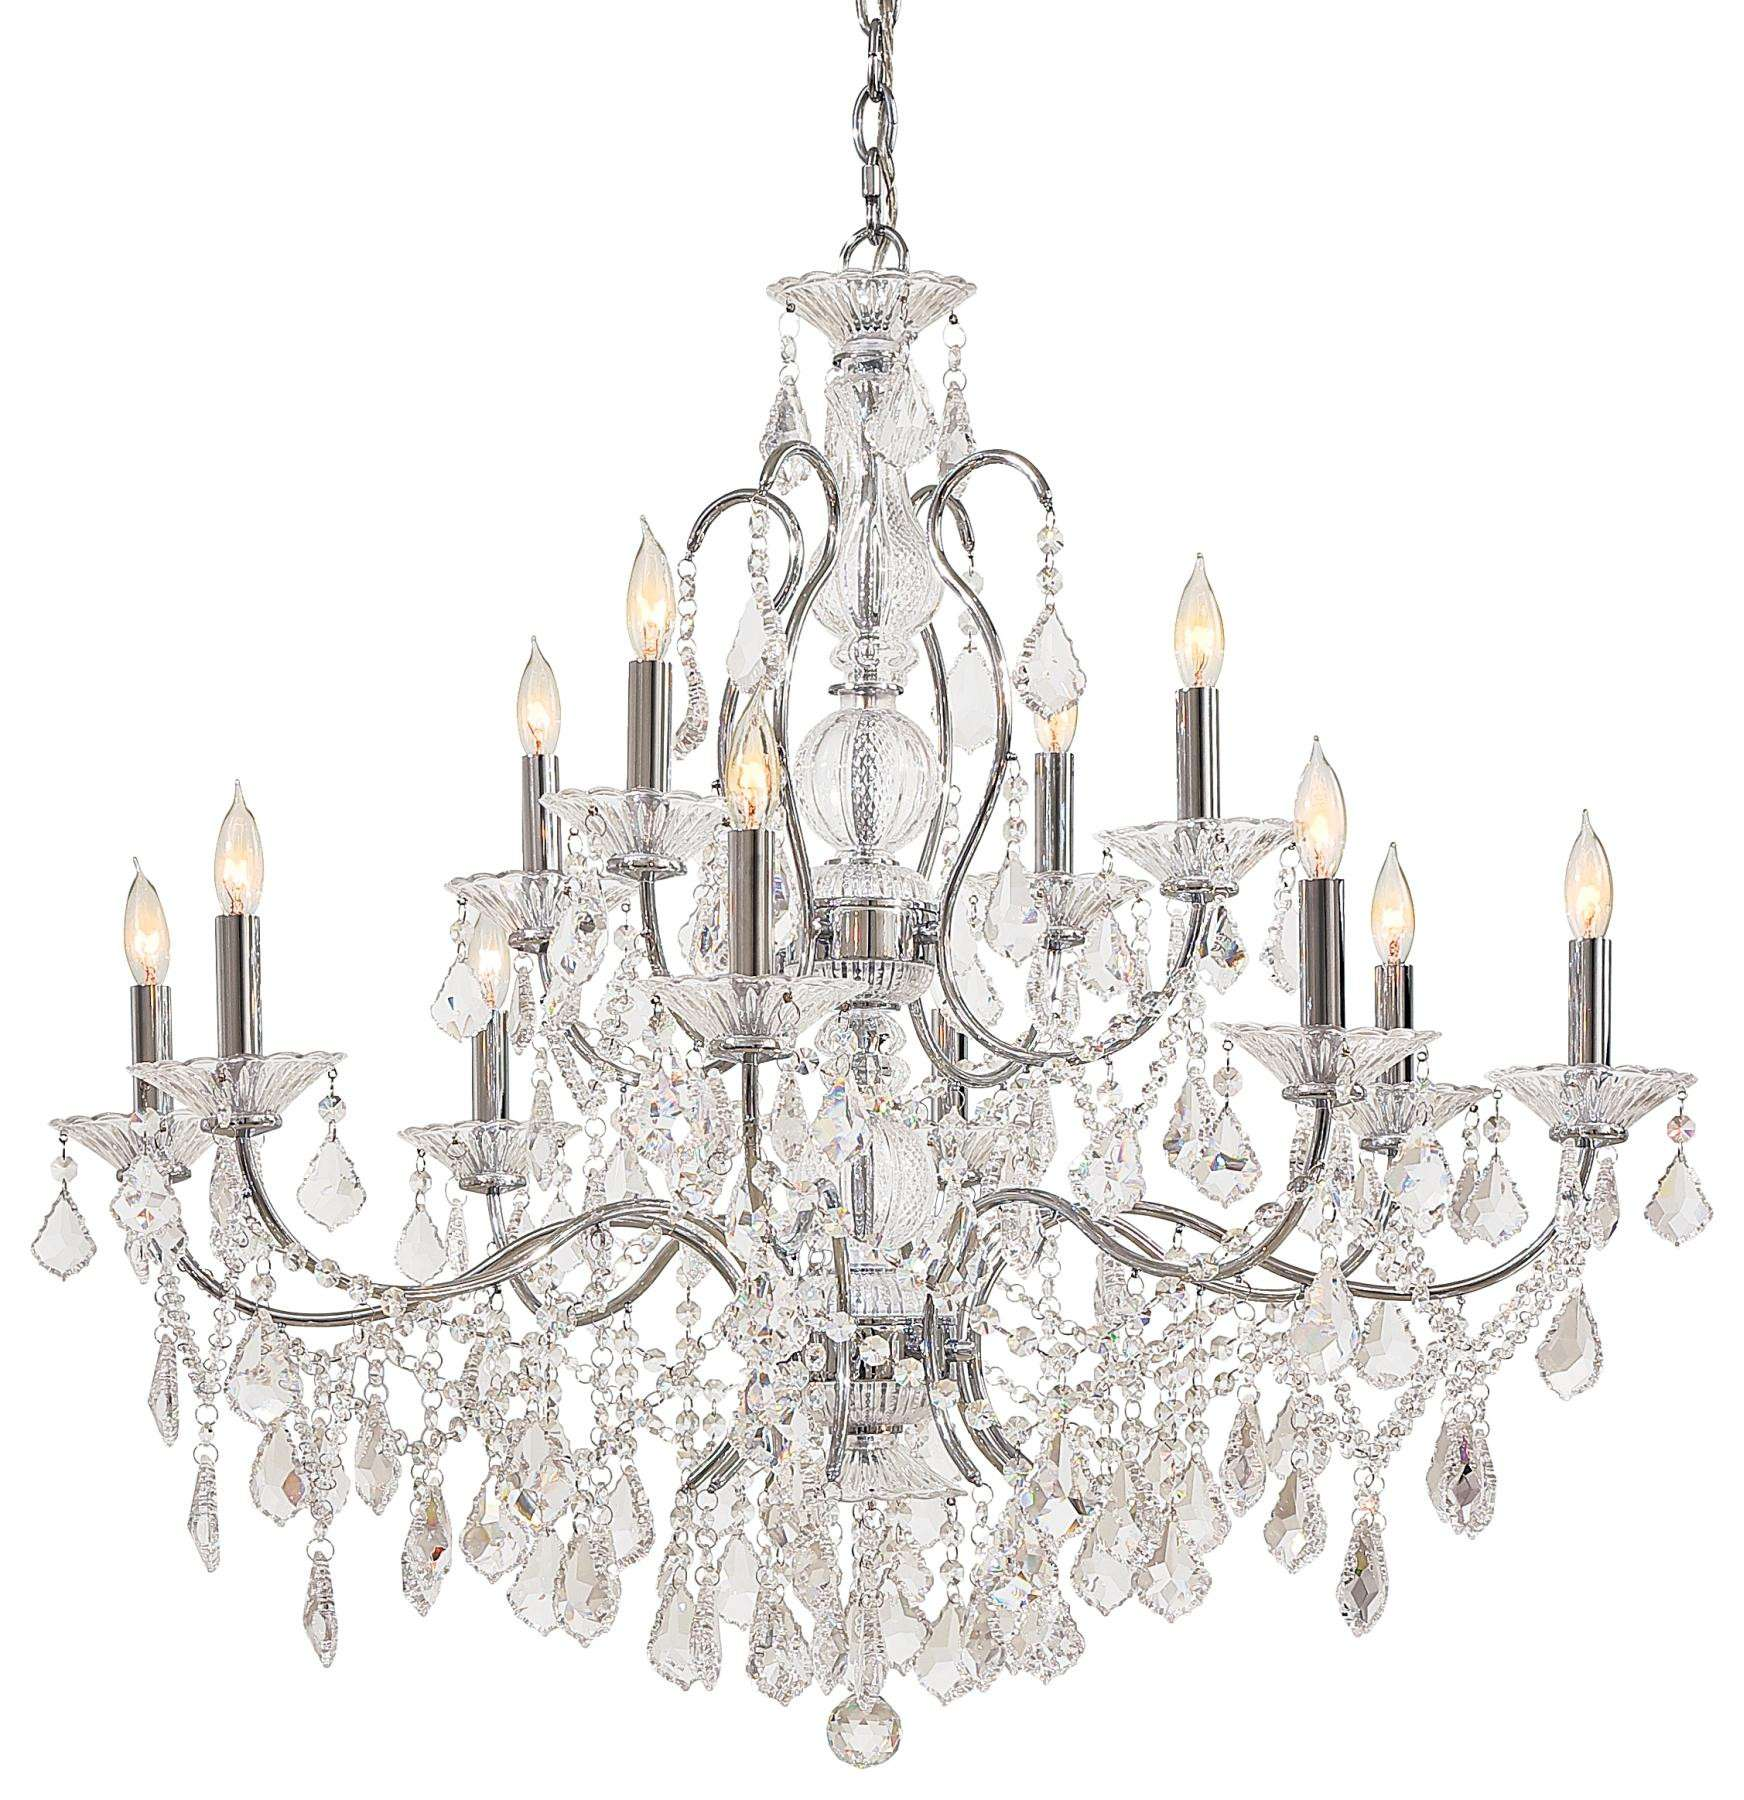 Metropolitan N8008 Twelve Light Chandelier in Chrome finish with Crystal